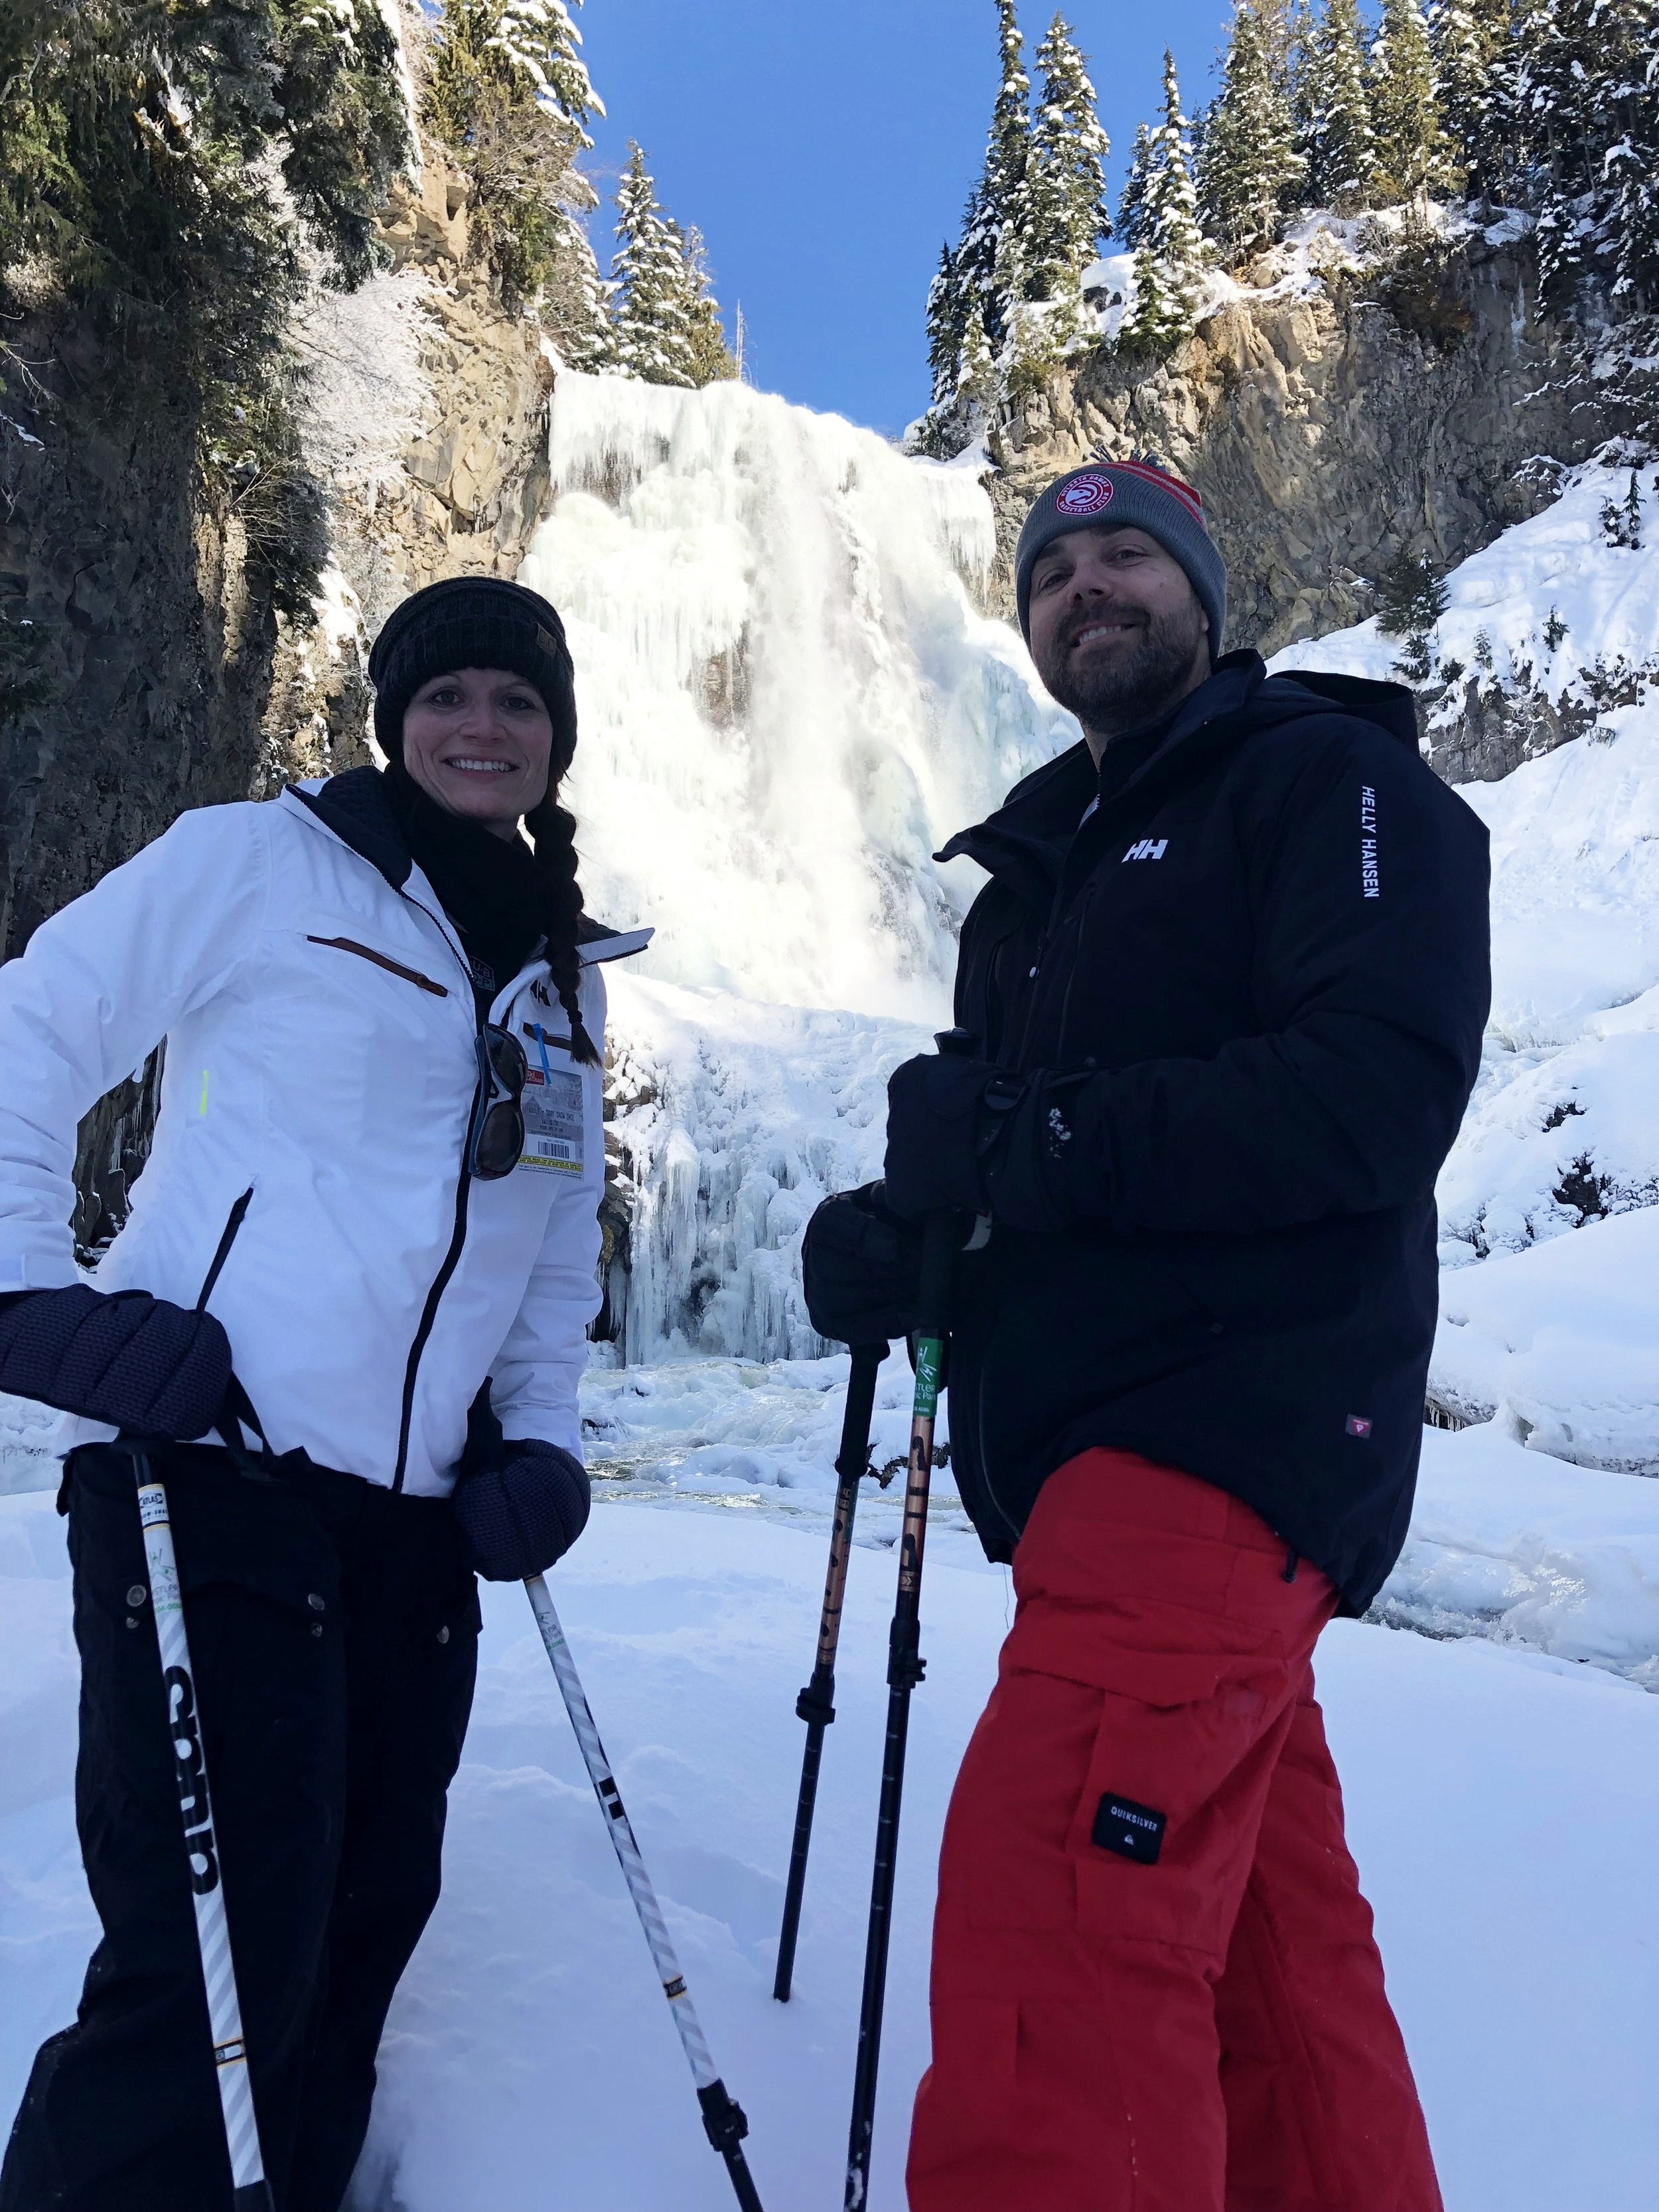 Truly an adventure when we happened upon a snowshoe guide in British Columbia. Trekked to this frozen waterfall in deep untouched powder.